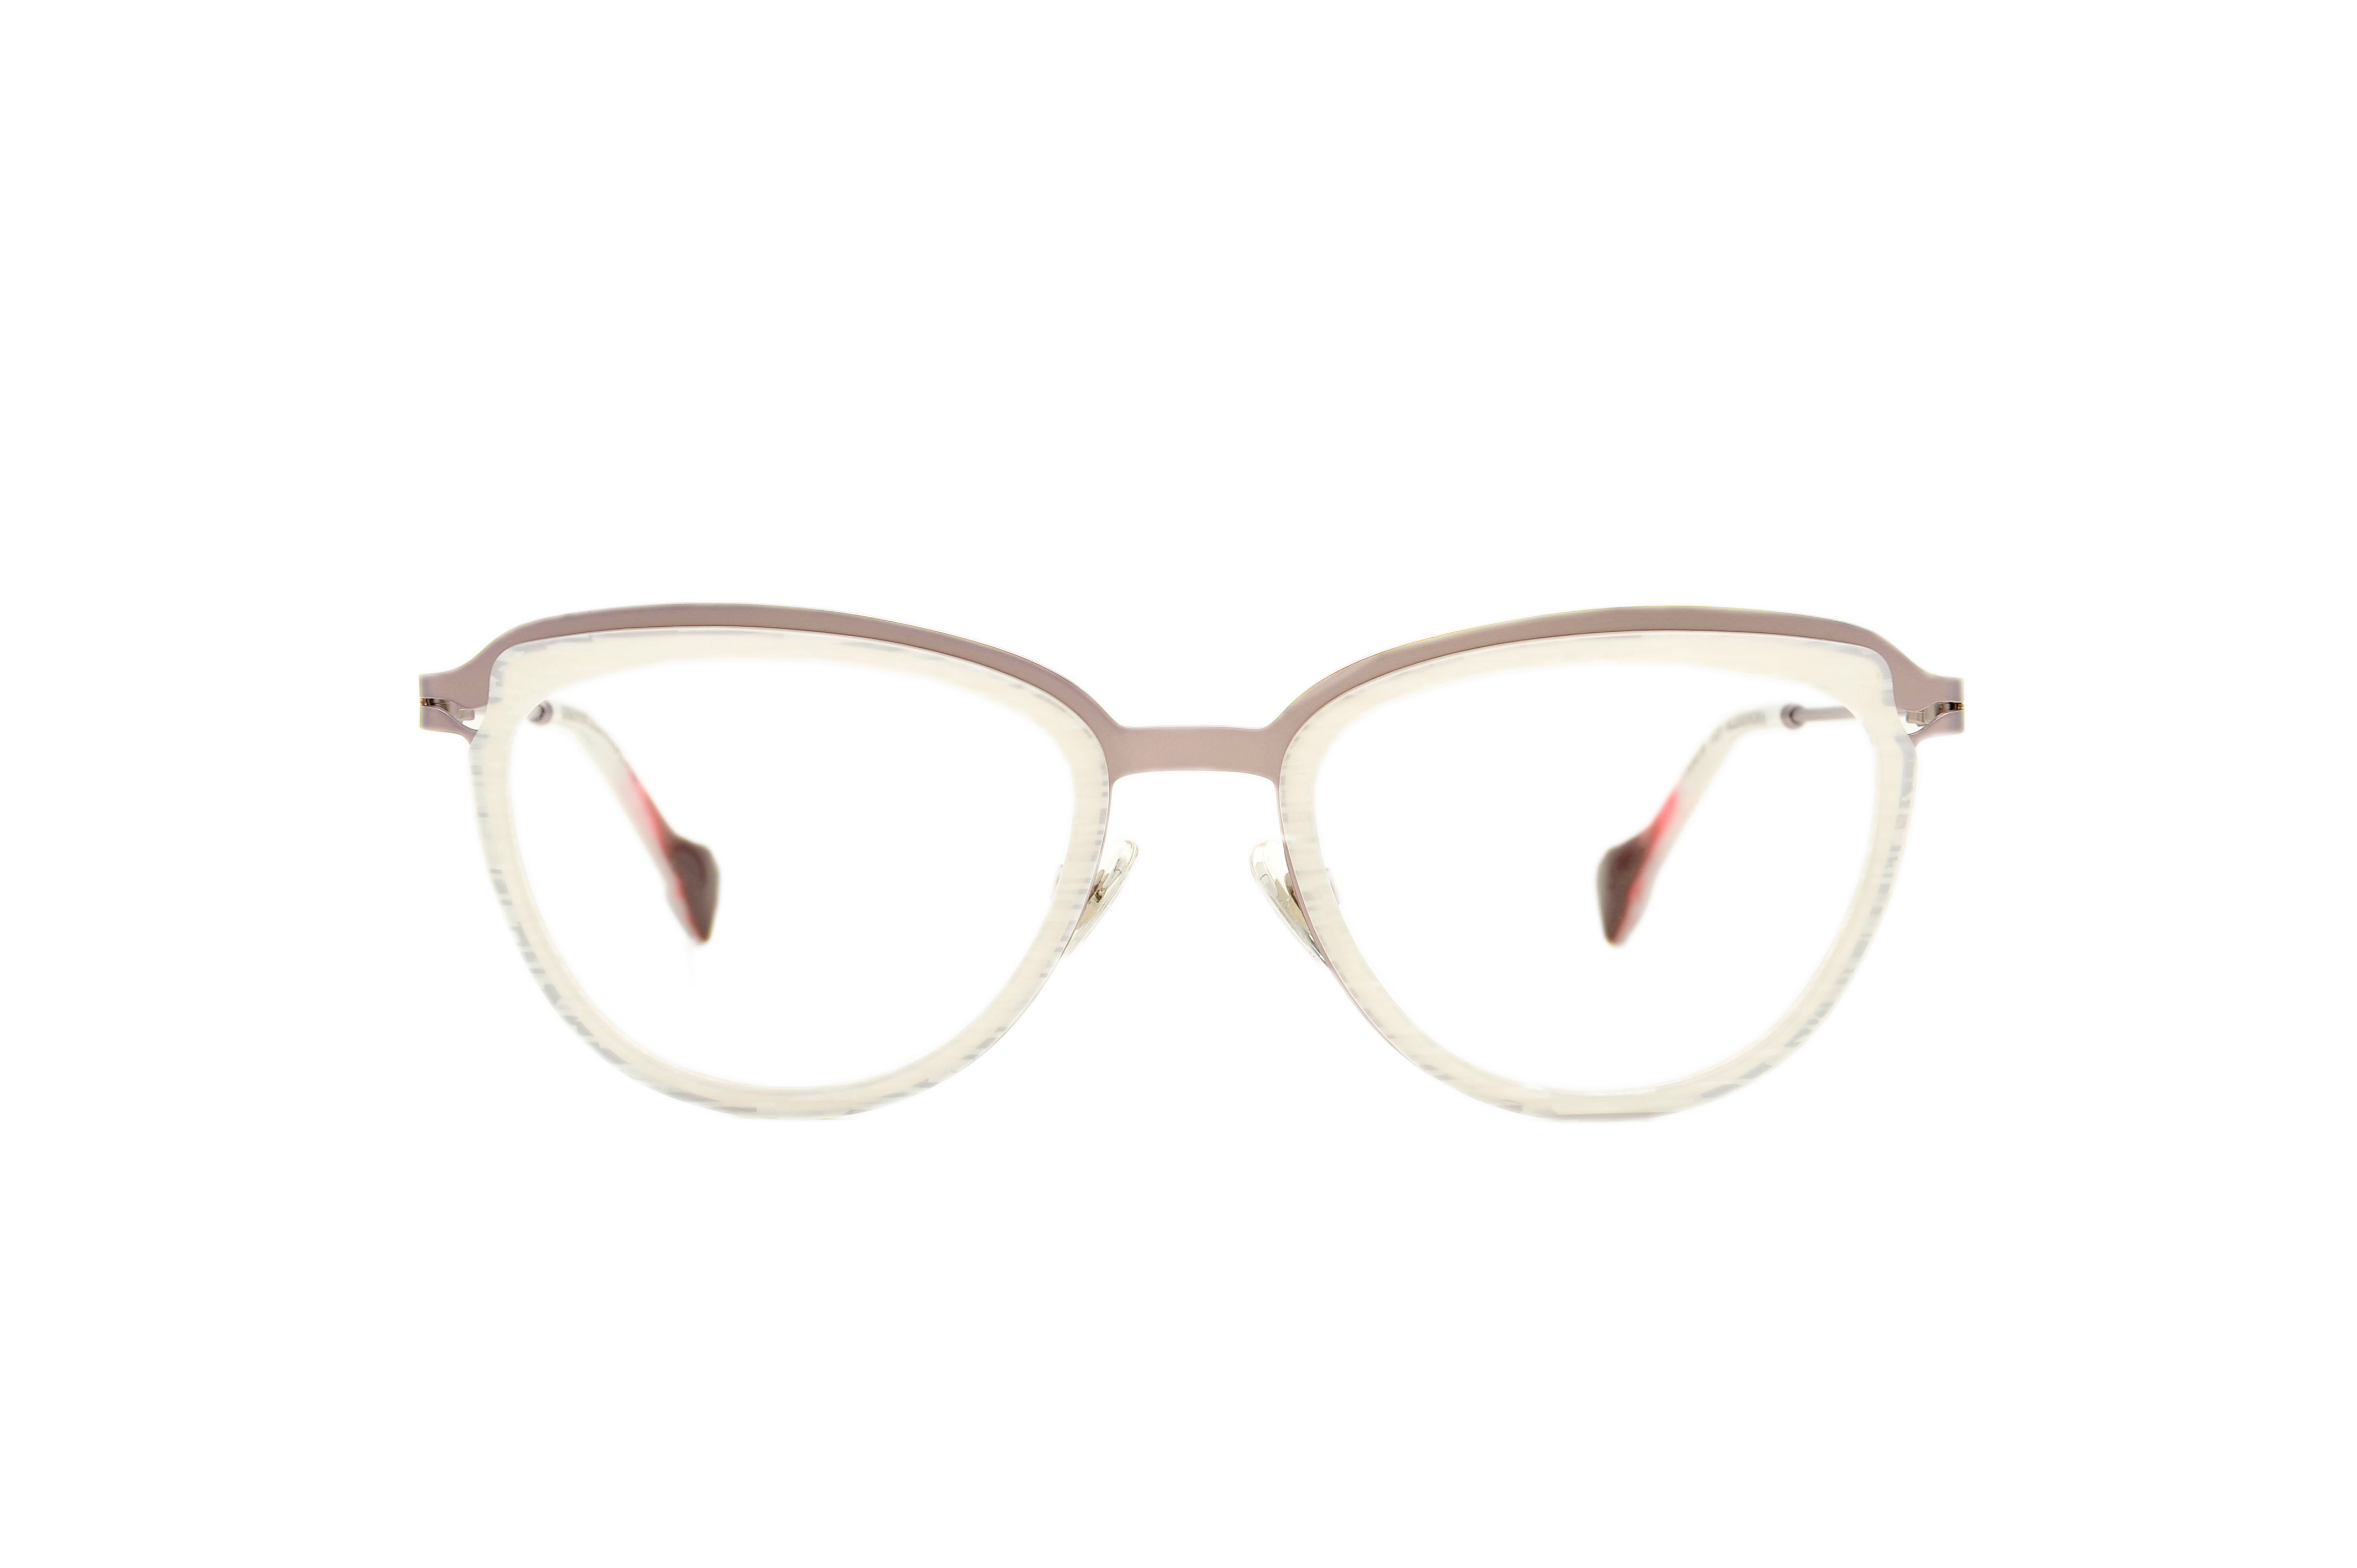 Alexandra acetate/metal cat eye white sunglasses by GIGI Studios